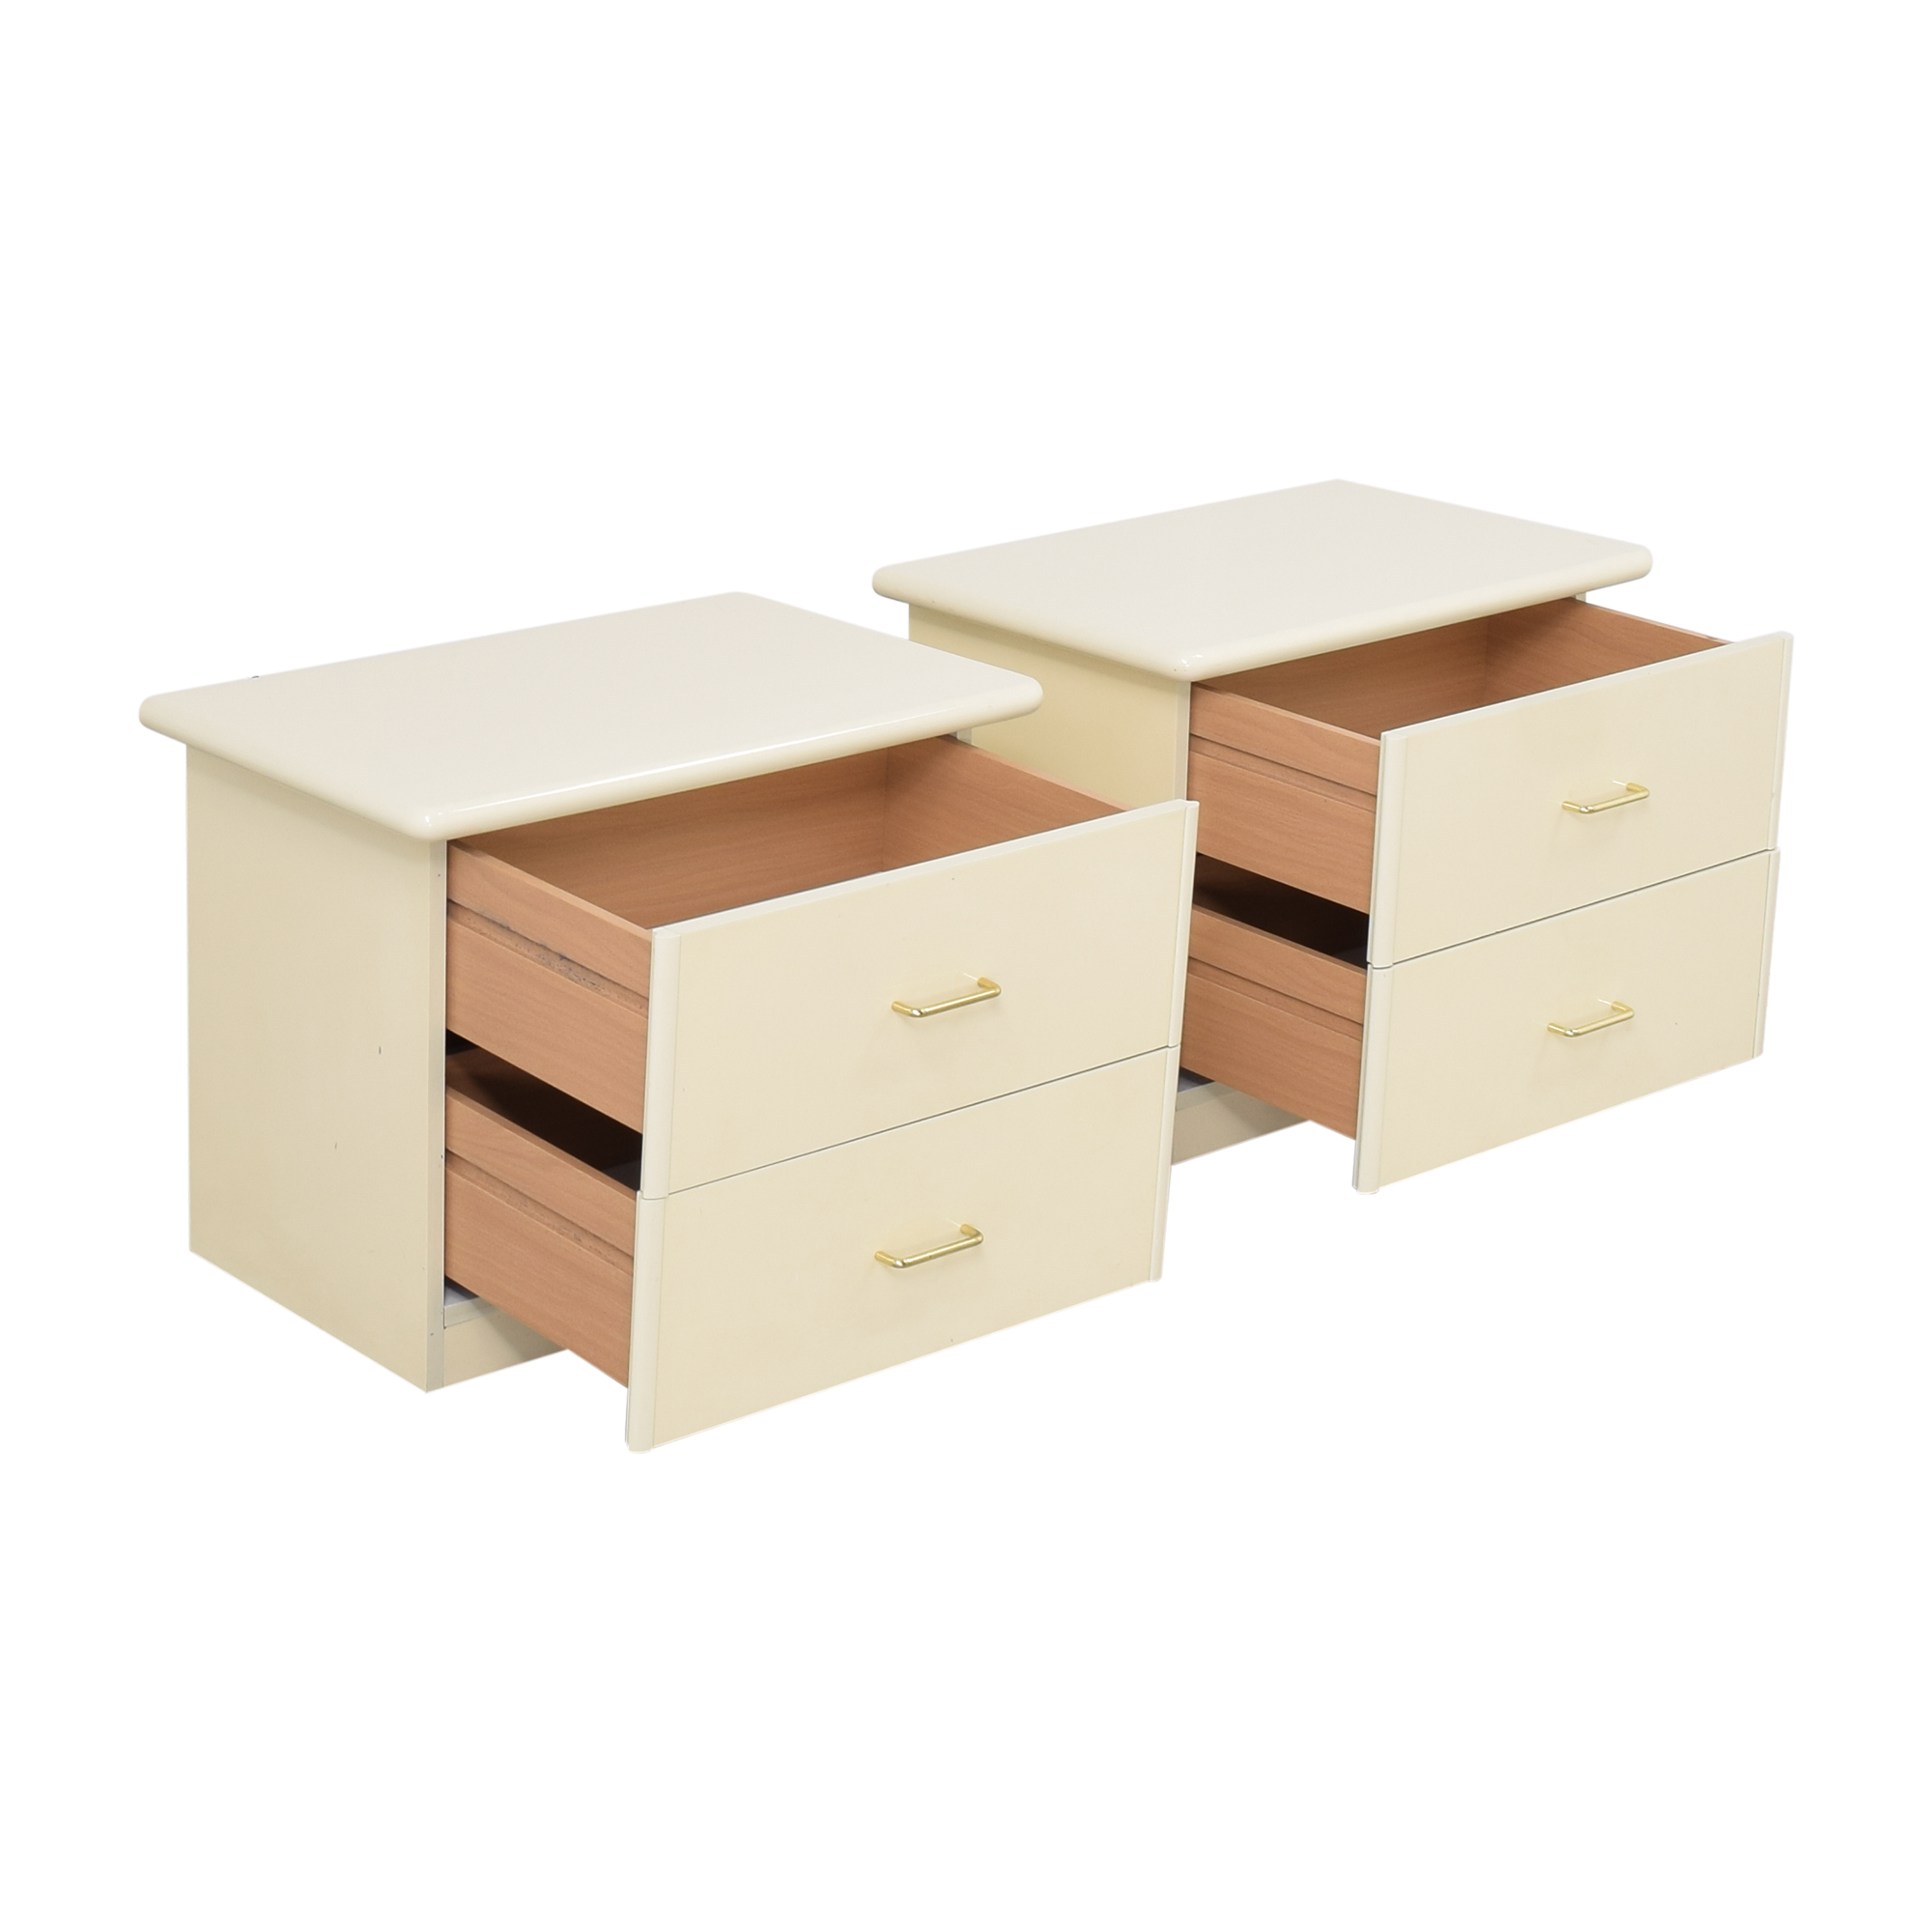 Seamans Seamans Two Drawer Nightstands Tables